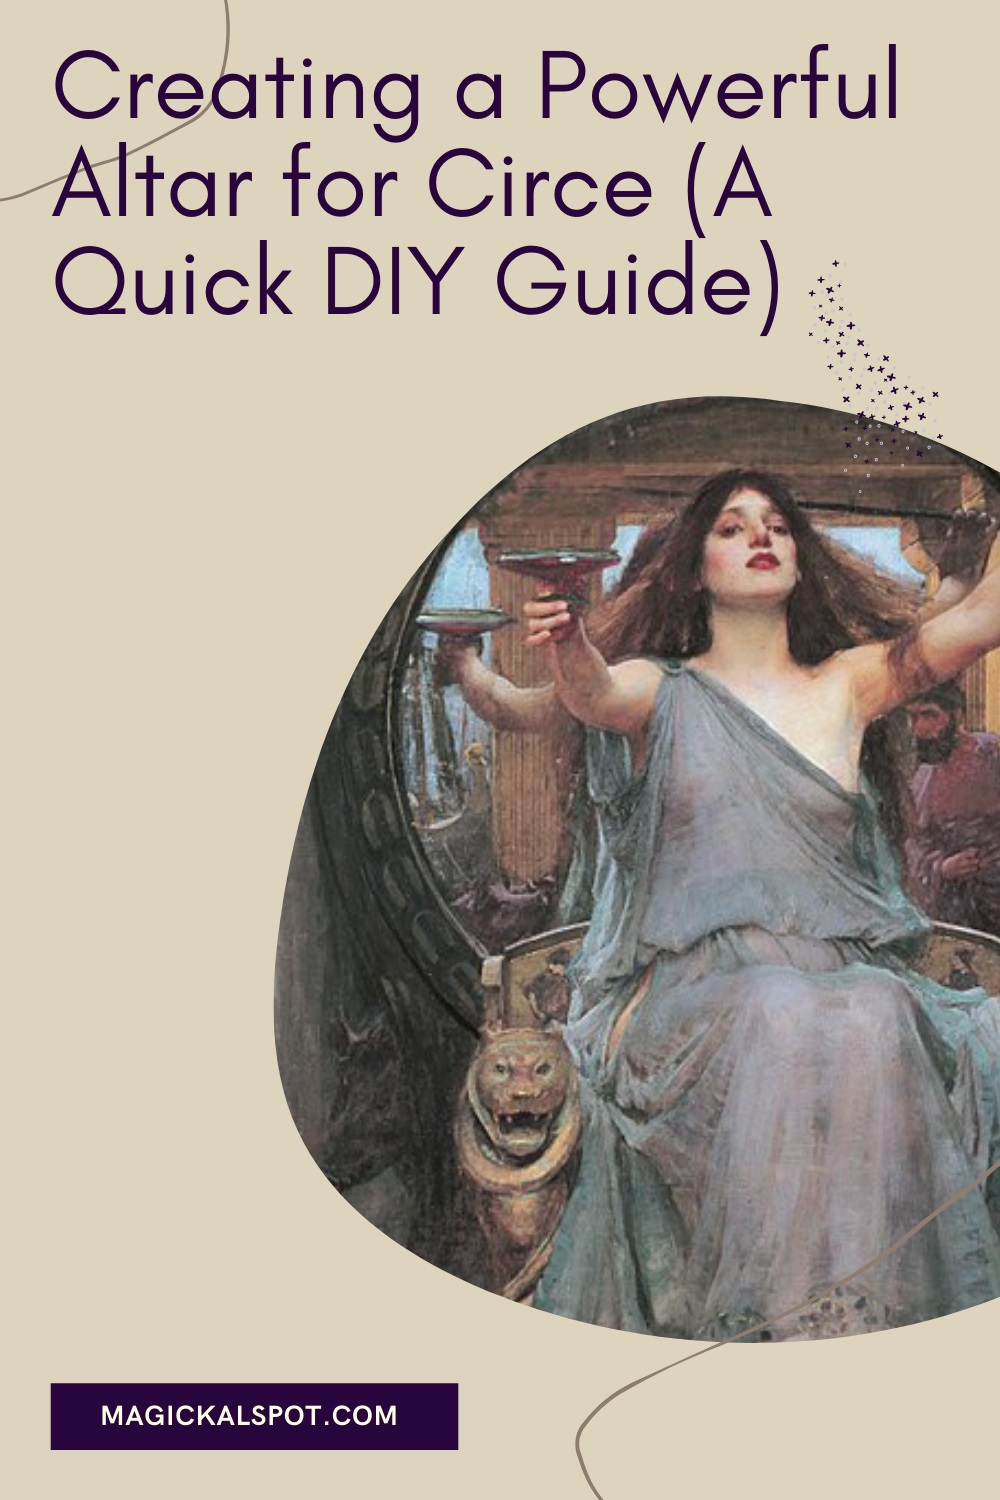 Creating a Powerful Altar for Circe by Magickal Spot